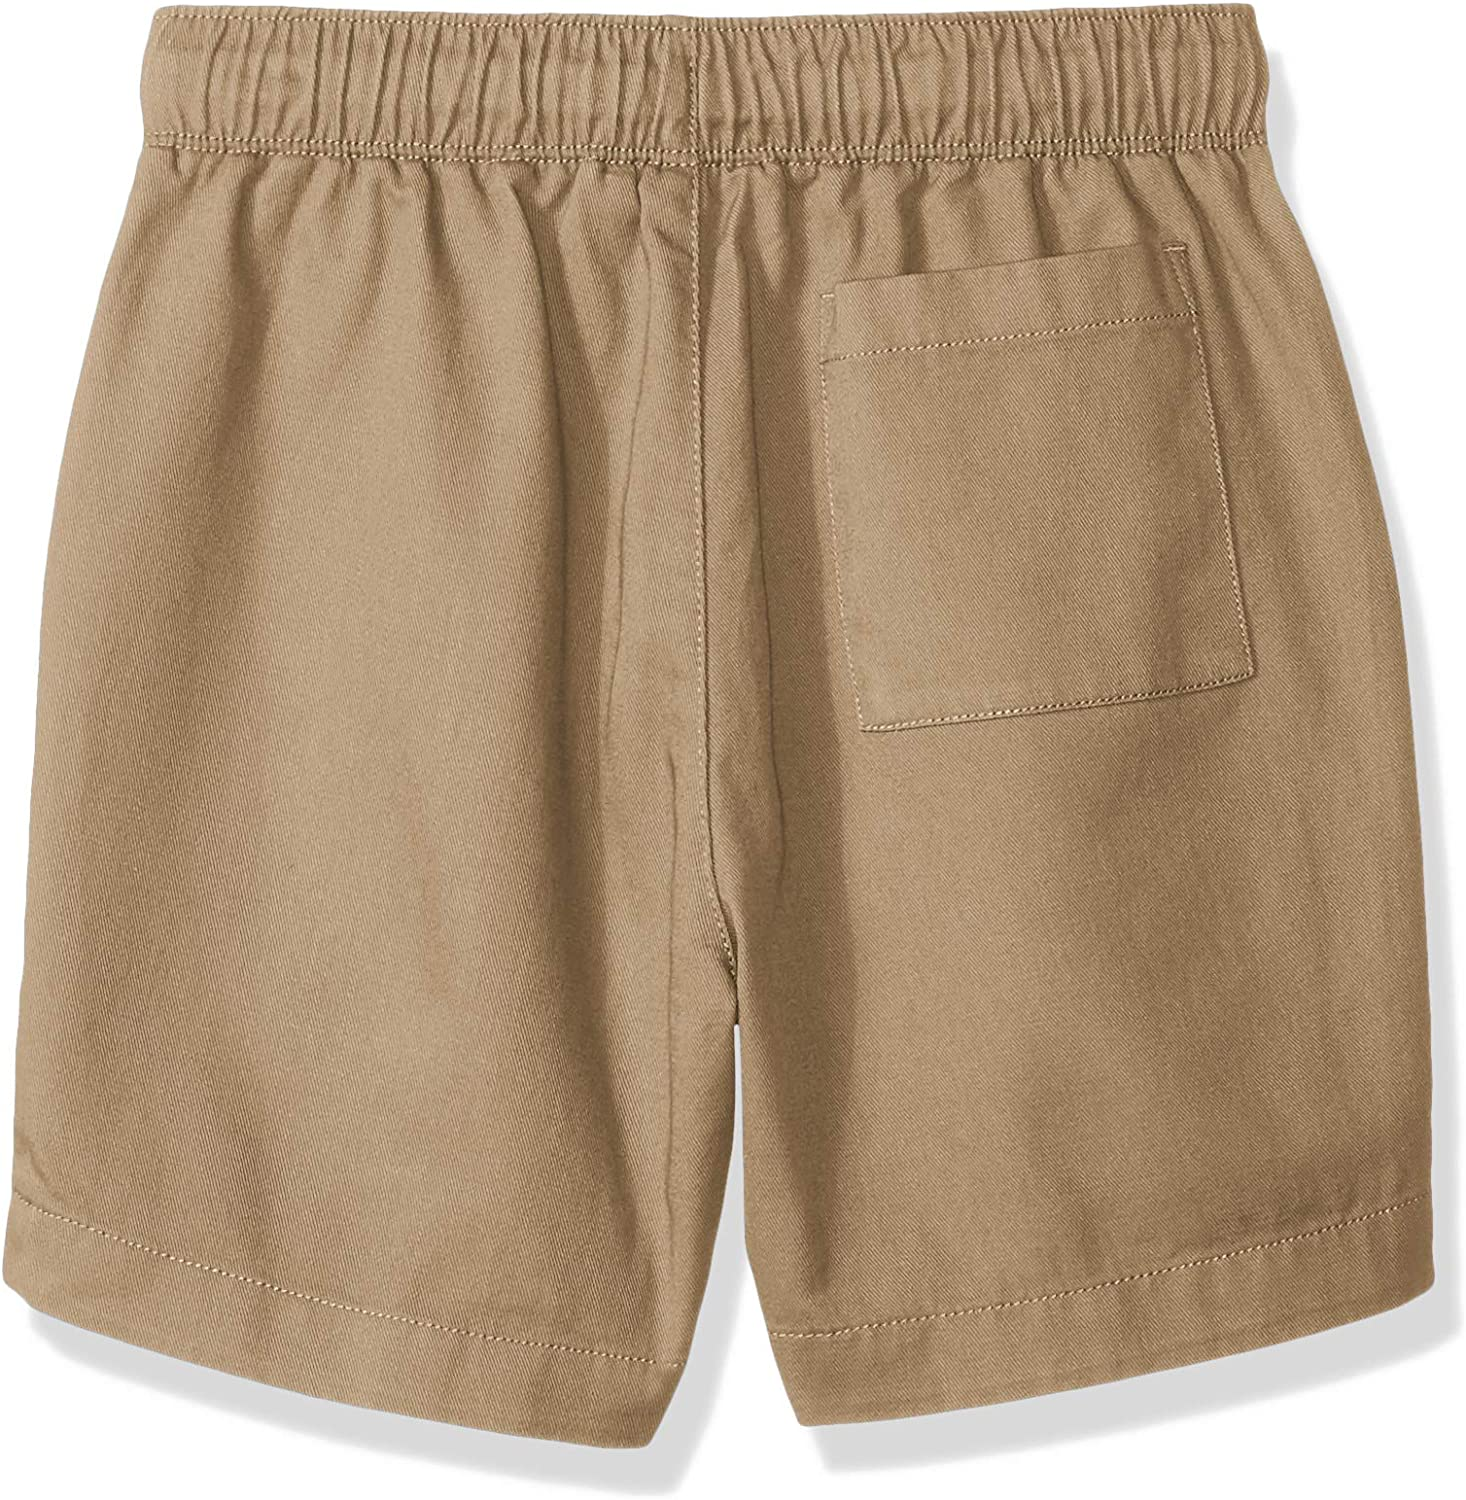 Brand LOOK by crewcuts Boys Pull on Chino Short